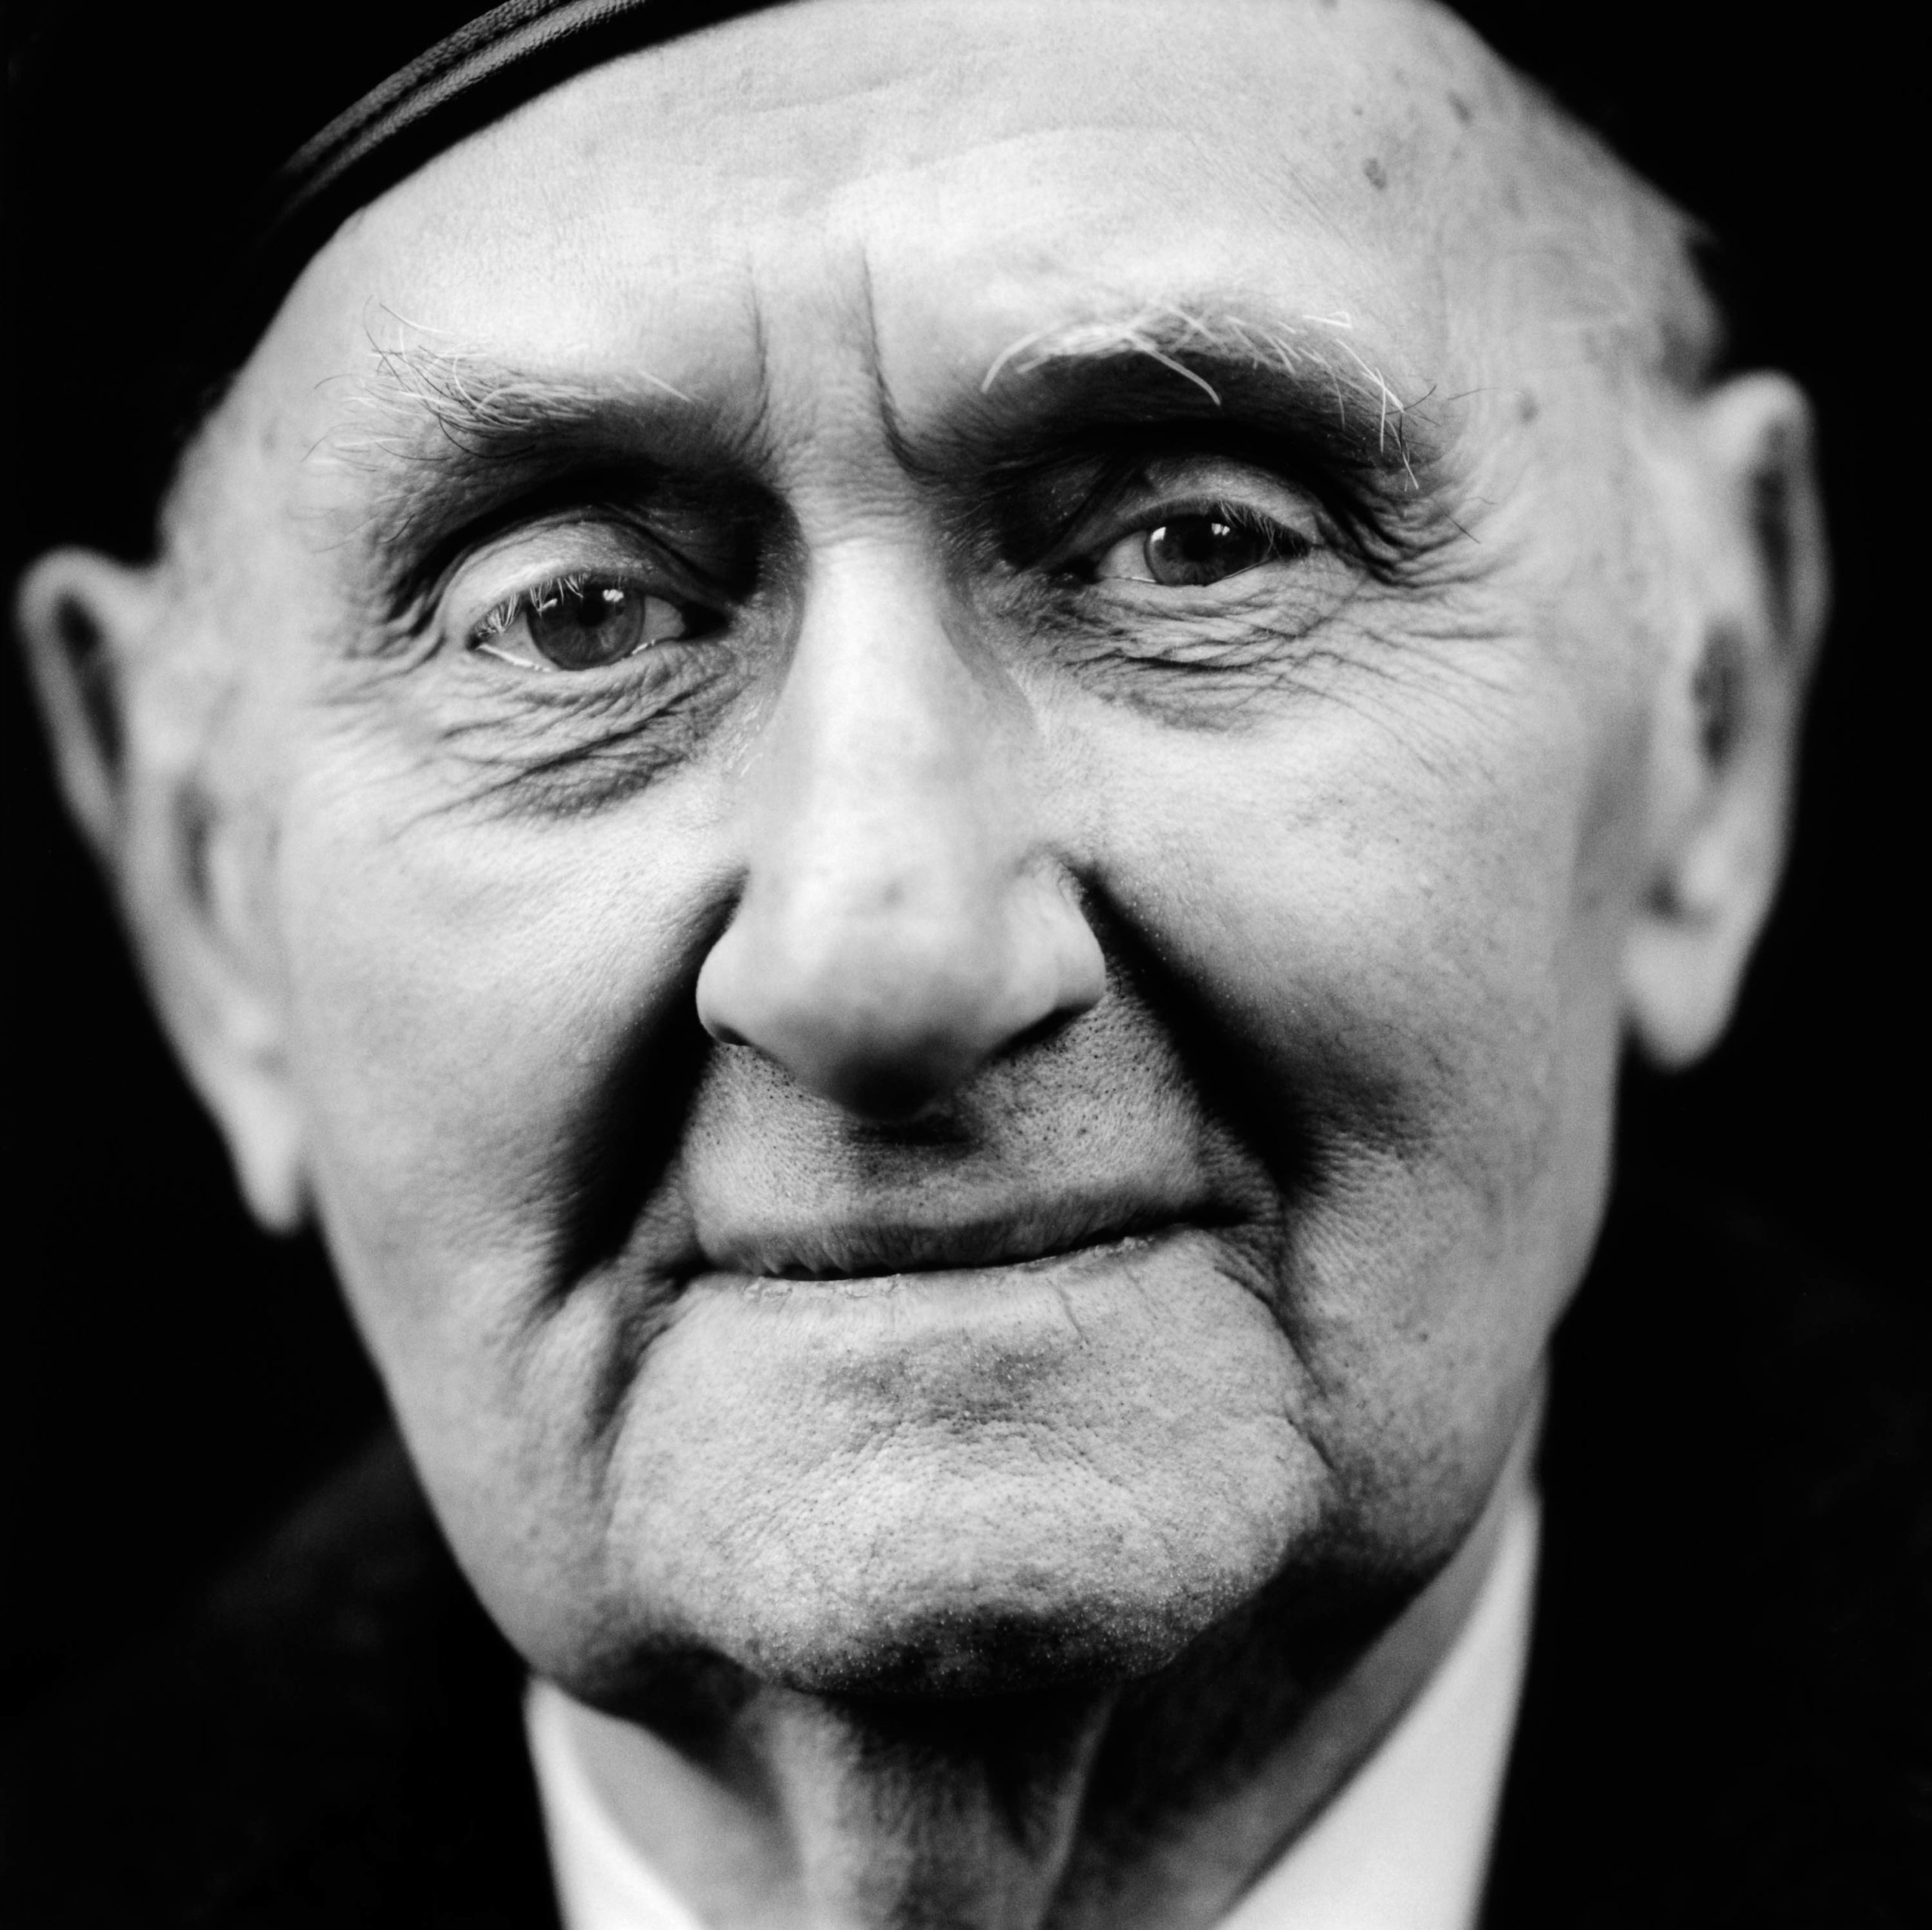 """Tadeusz Wenda (Poland, 1923). Interview outtake: """"We came across a German officer who had lost his legs. He tried to shoot at us, so we took his weapon from him. Then he asked us to kill him. We didn't, we carried on and left him there. That still bothers me."""""""